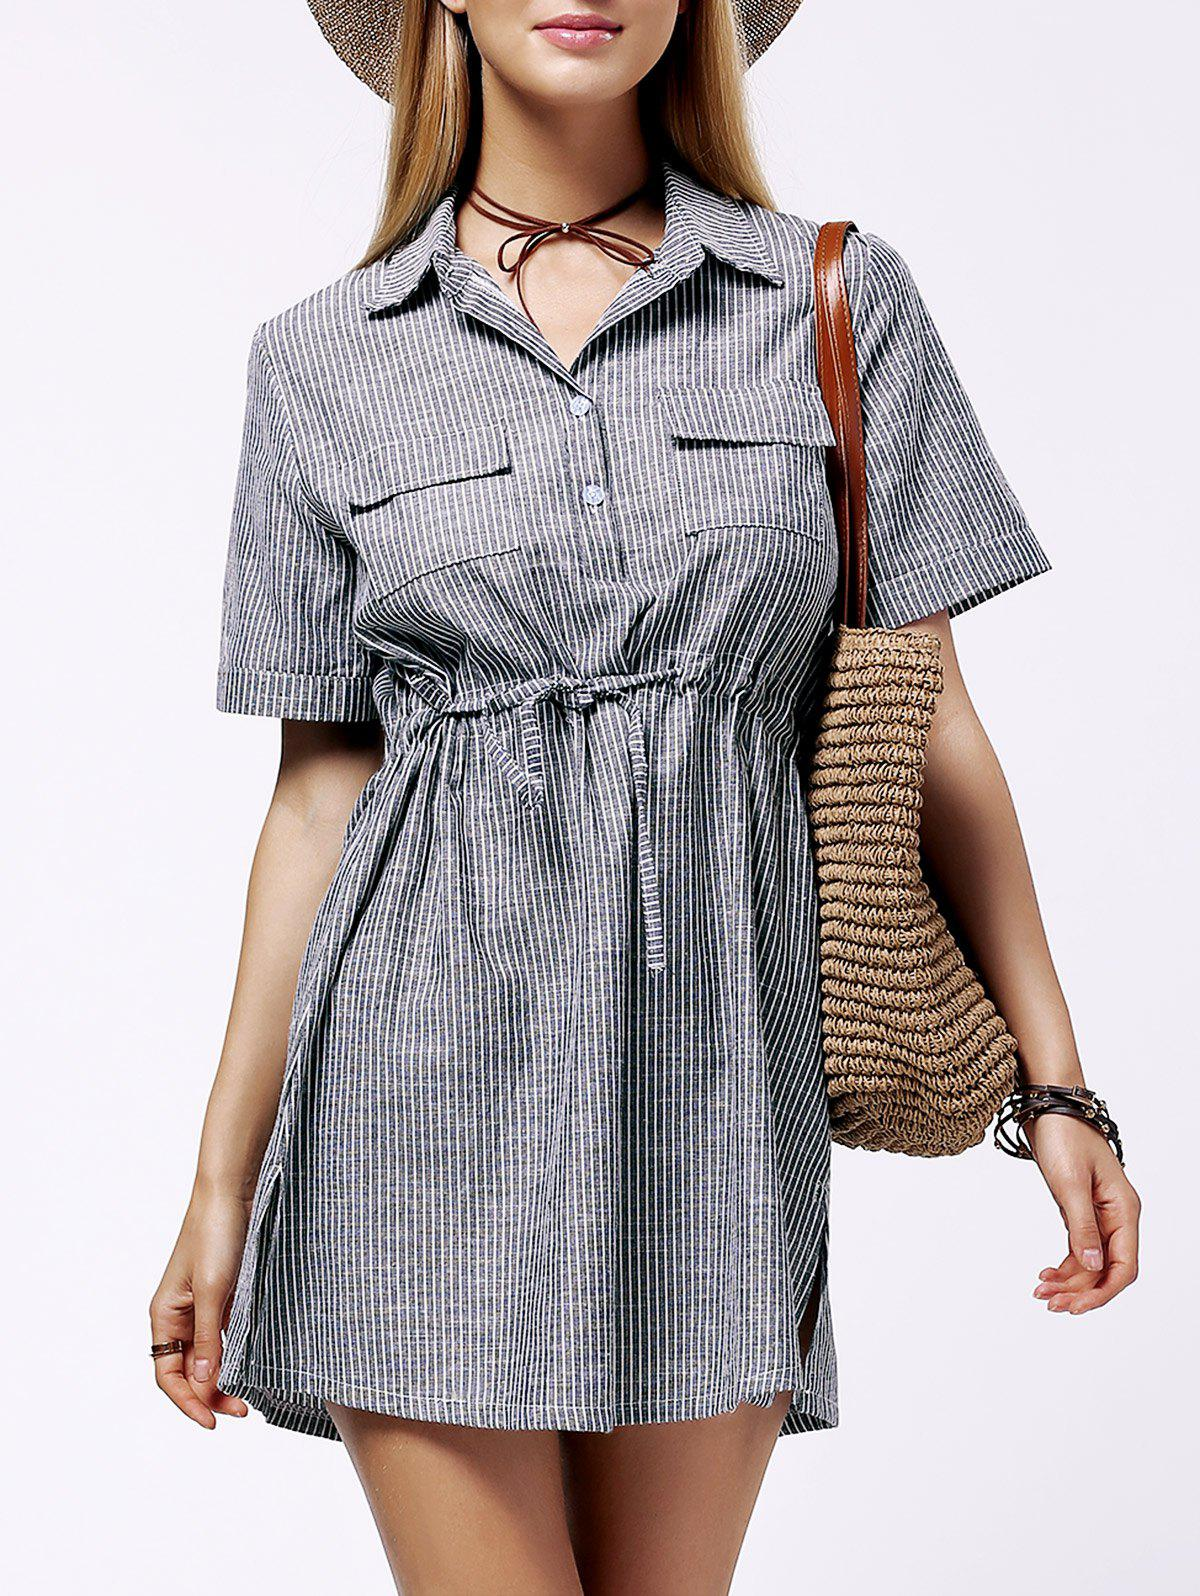 Stylish Women's Plus Size Shirt Collar Striped Dress - GRAY 3XL